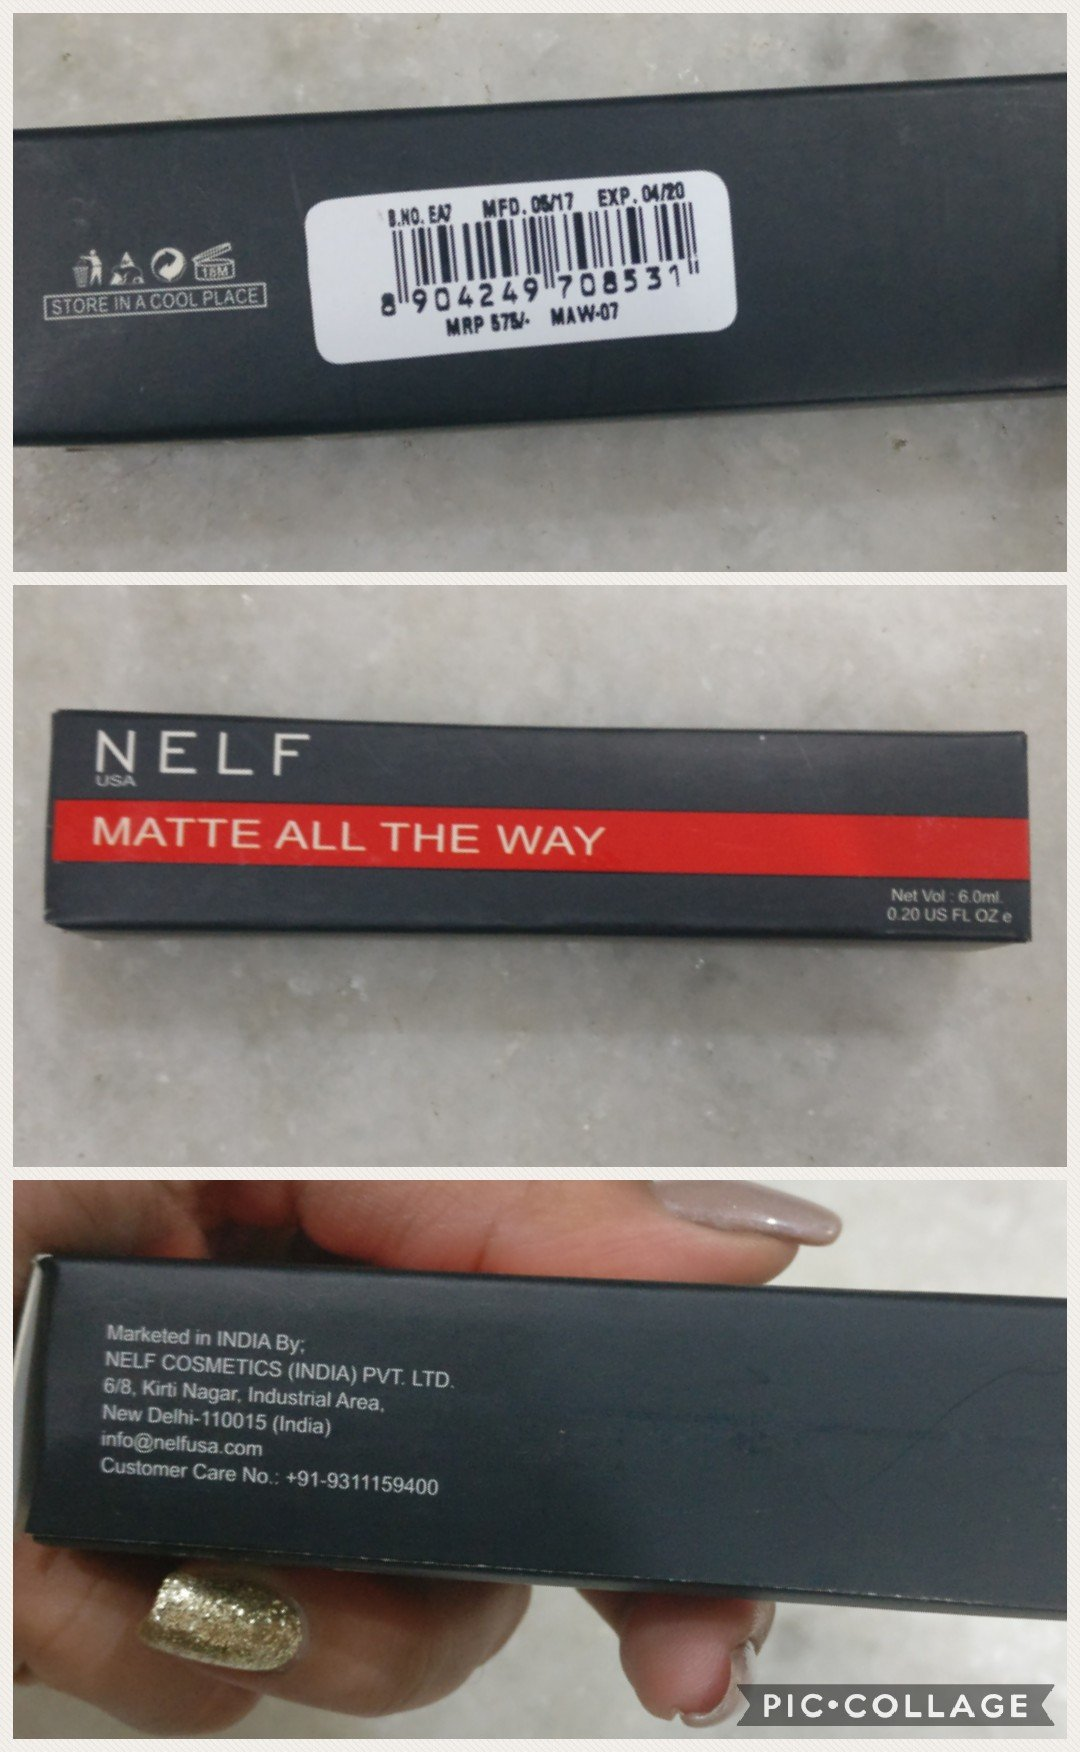 Nelf cosmetics all the way matte lipstick swatches and review image